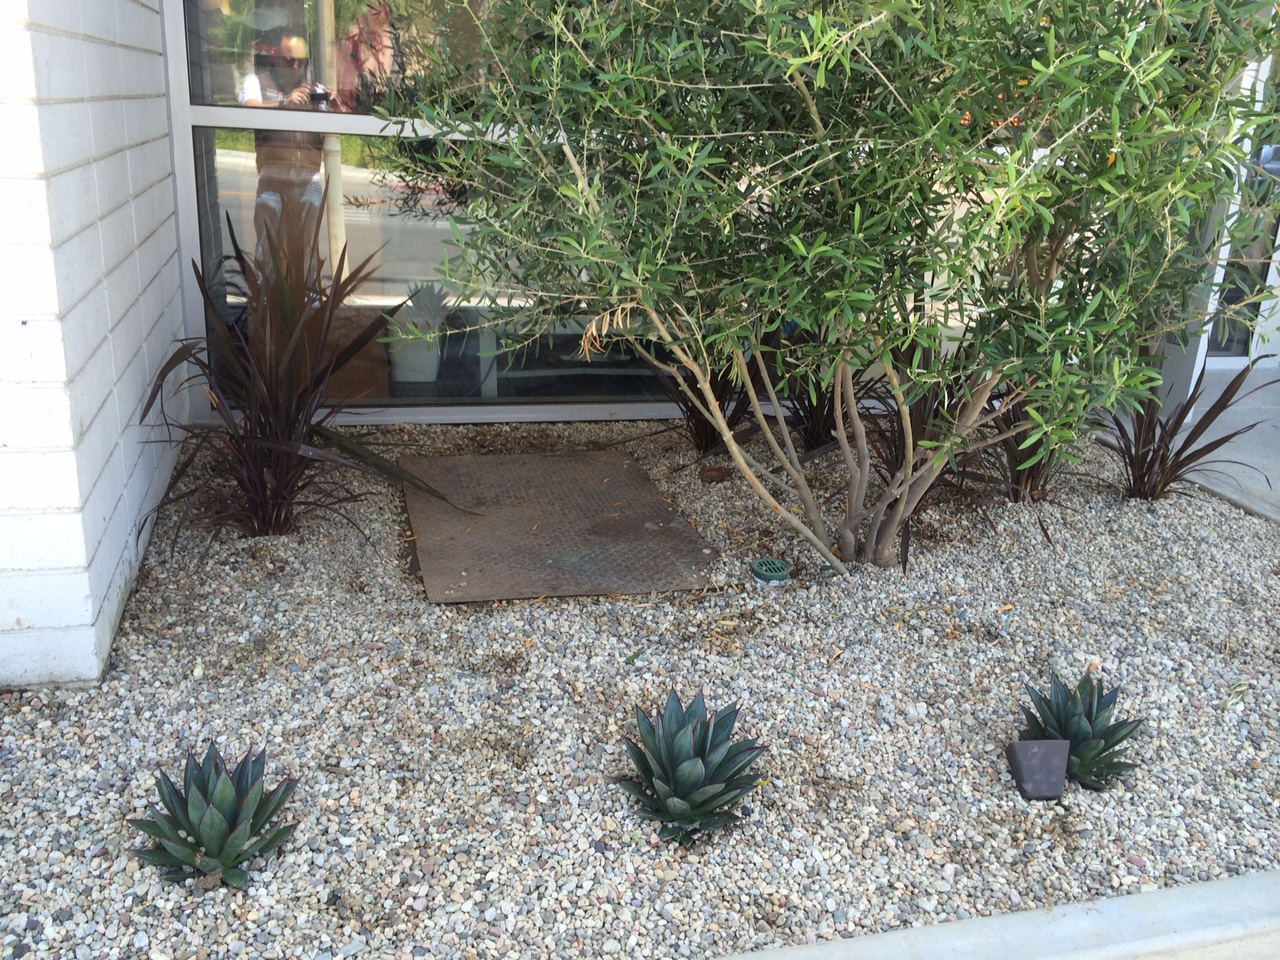 Drought tolerant saving water without sacrificing  a nice landscape